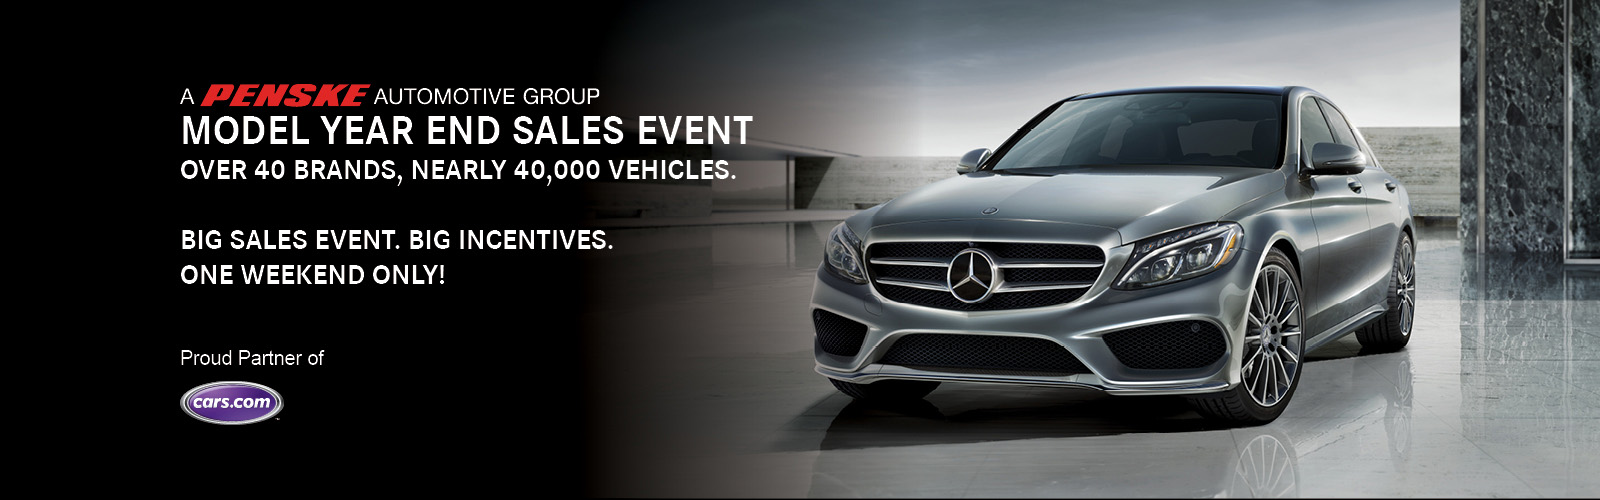 Mercedes benz new used car dealer serving phoenix az for Mercedes benz of chandler inventory